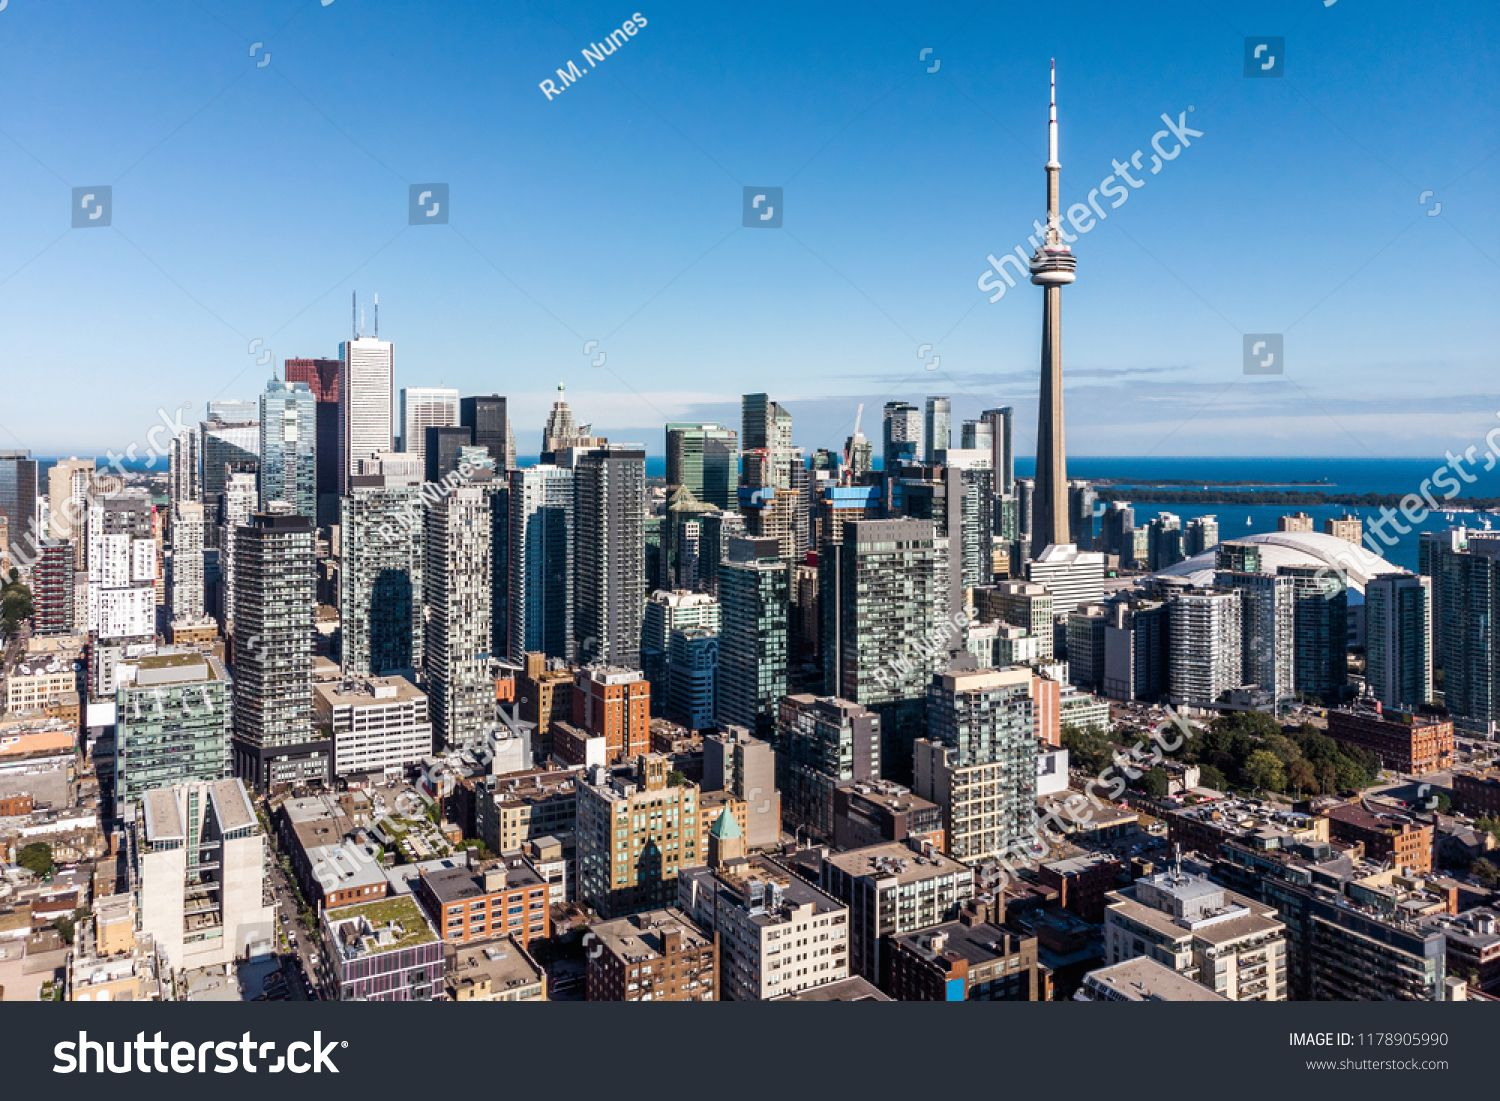 Aerial view of Downtown Toronto including architectural